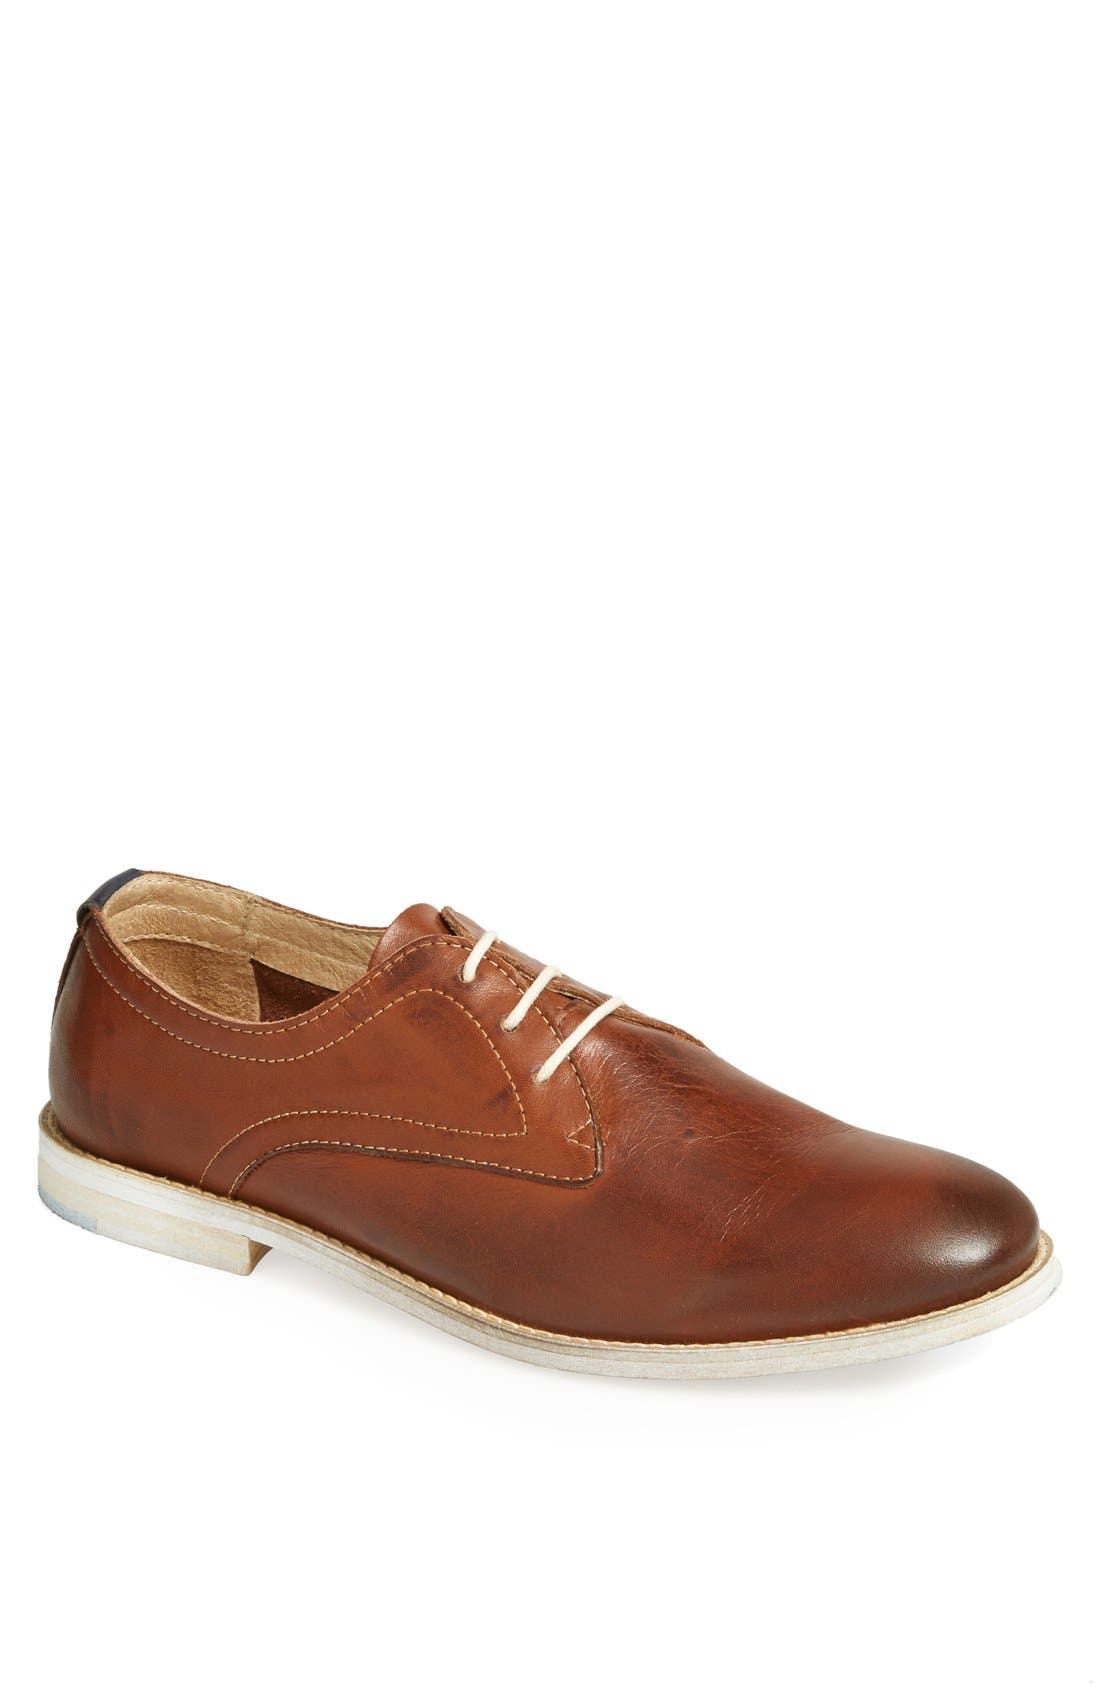 Main Image - ALDO 'Bovell' Plain Toe Derby (Men)